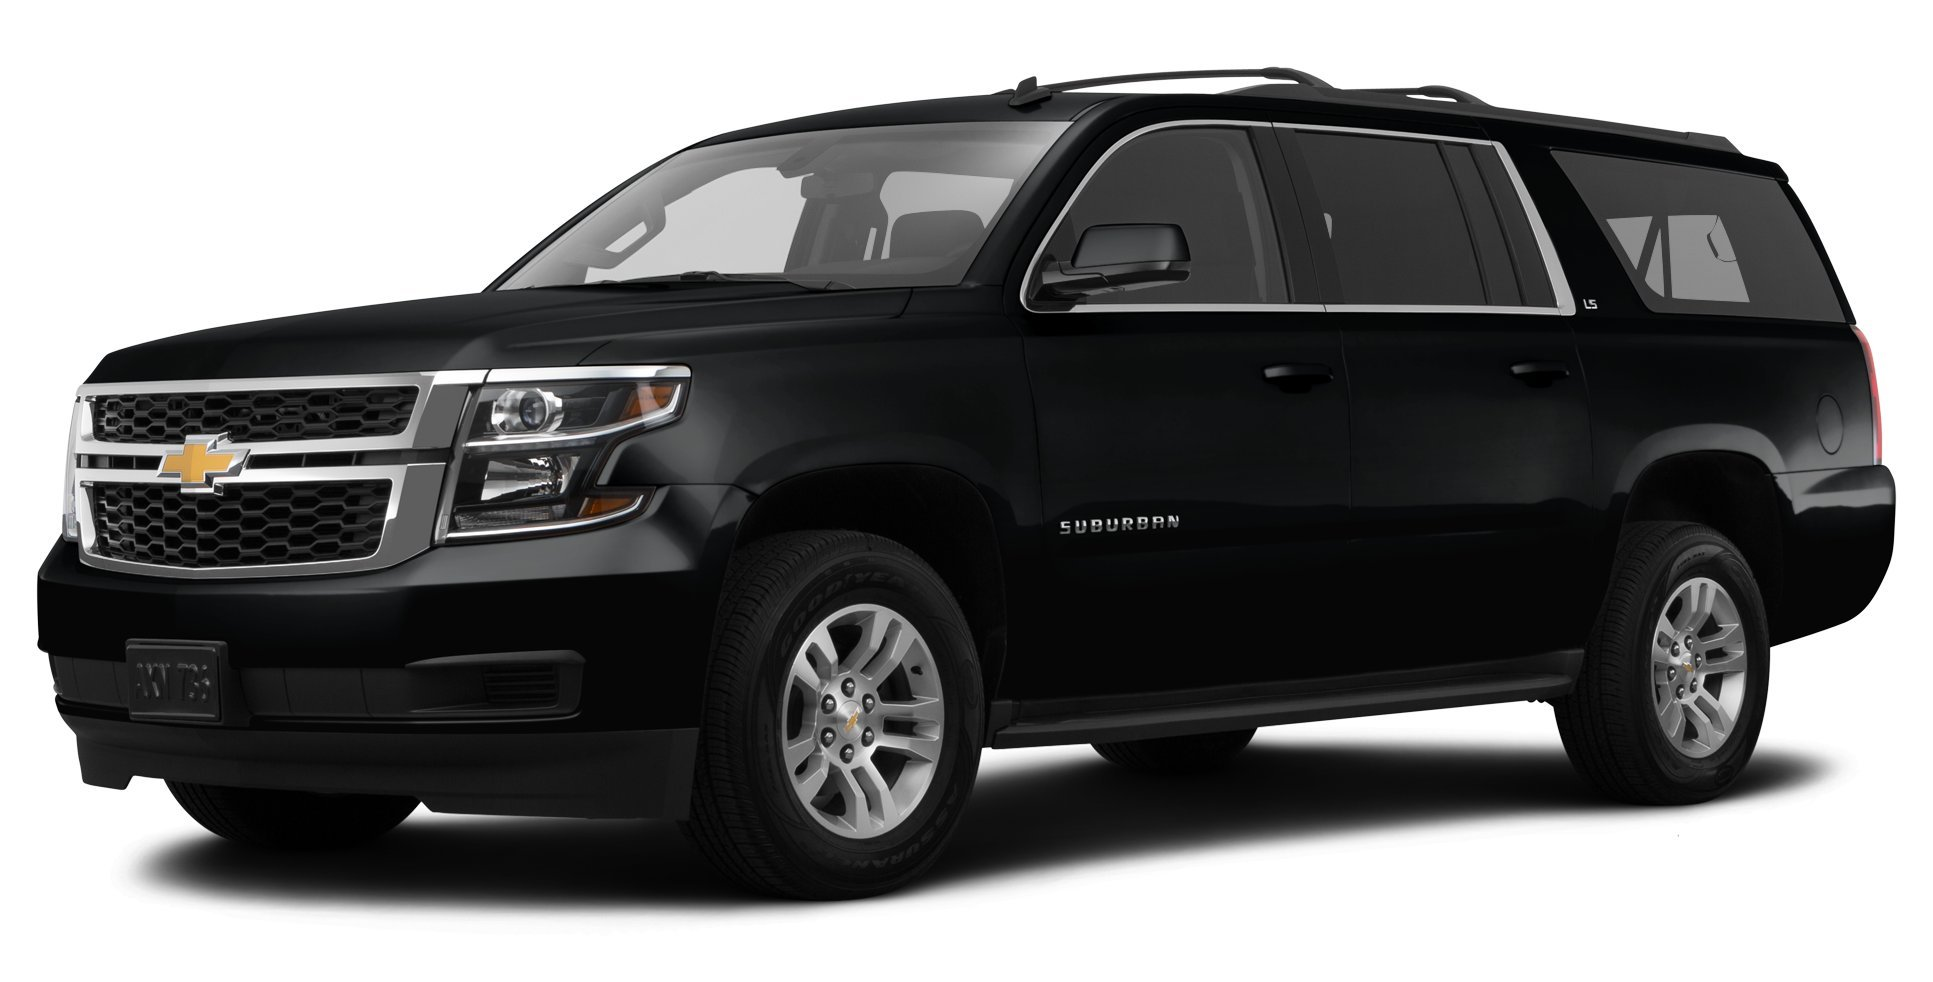 Image result for chevy suburban black